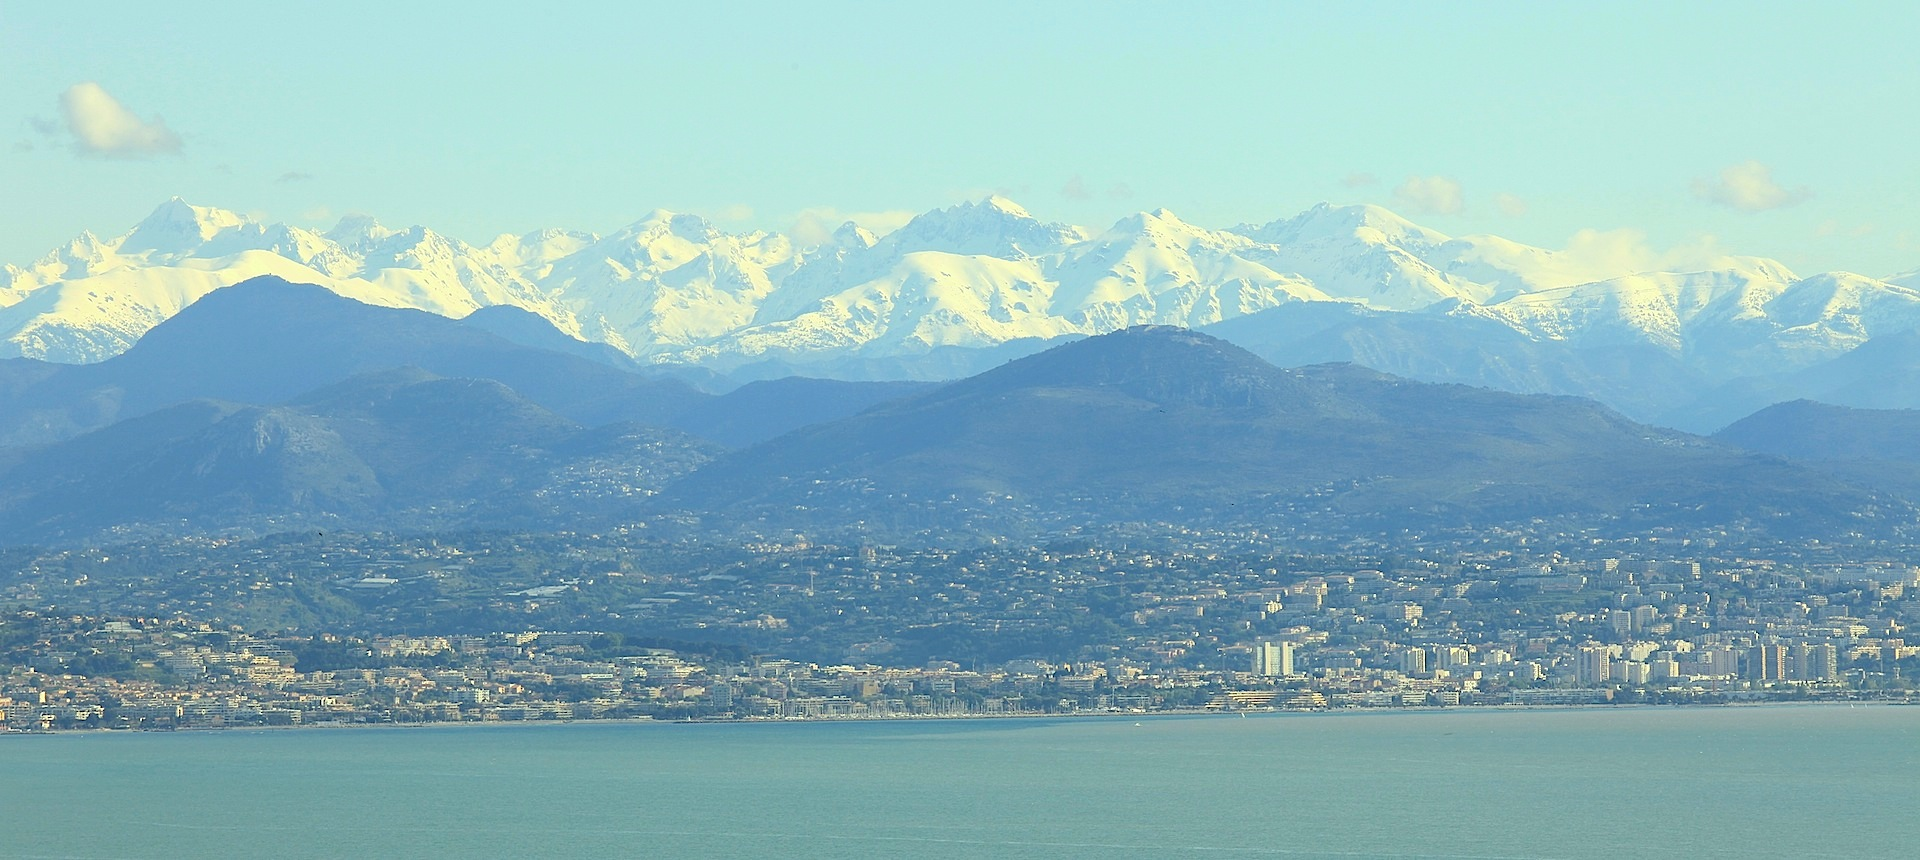 French Riviera Coastline and Snow-Capped ountains - AMB Cote d'Azur